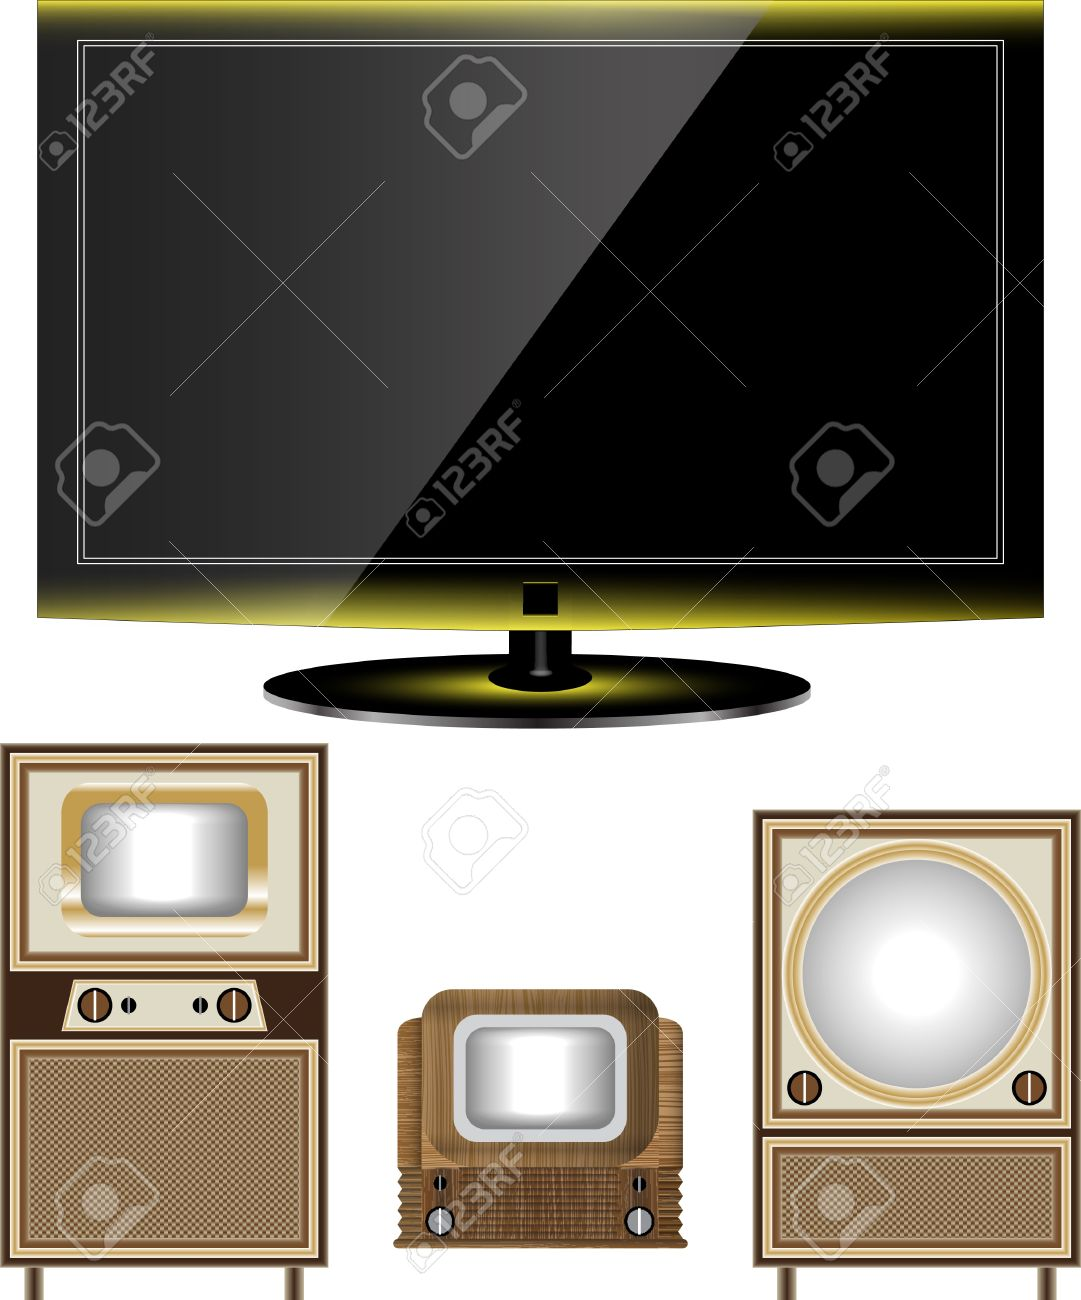 tv old and new - 10437639